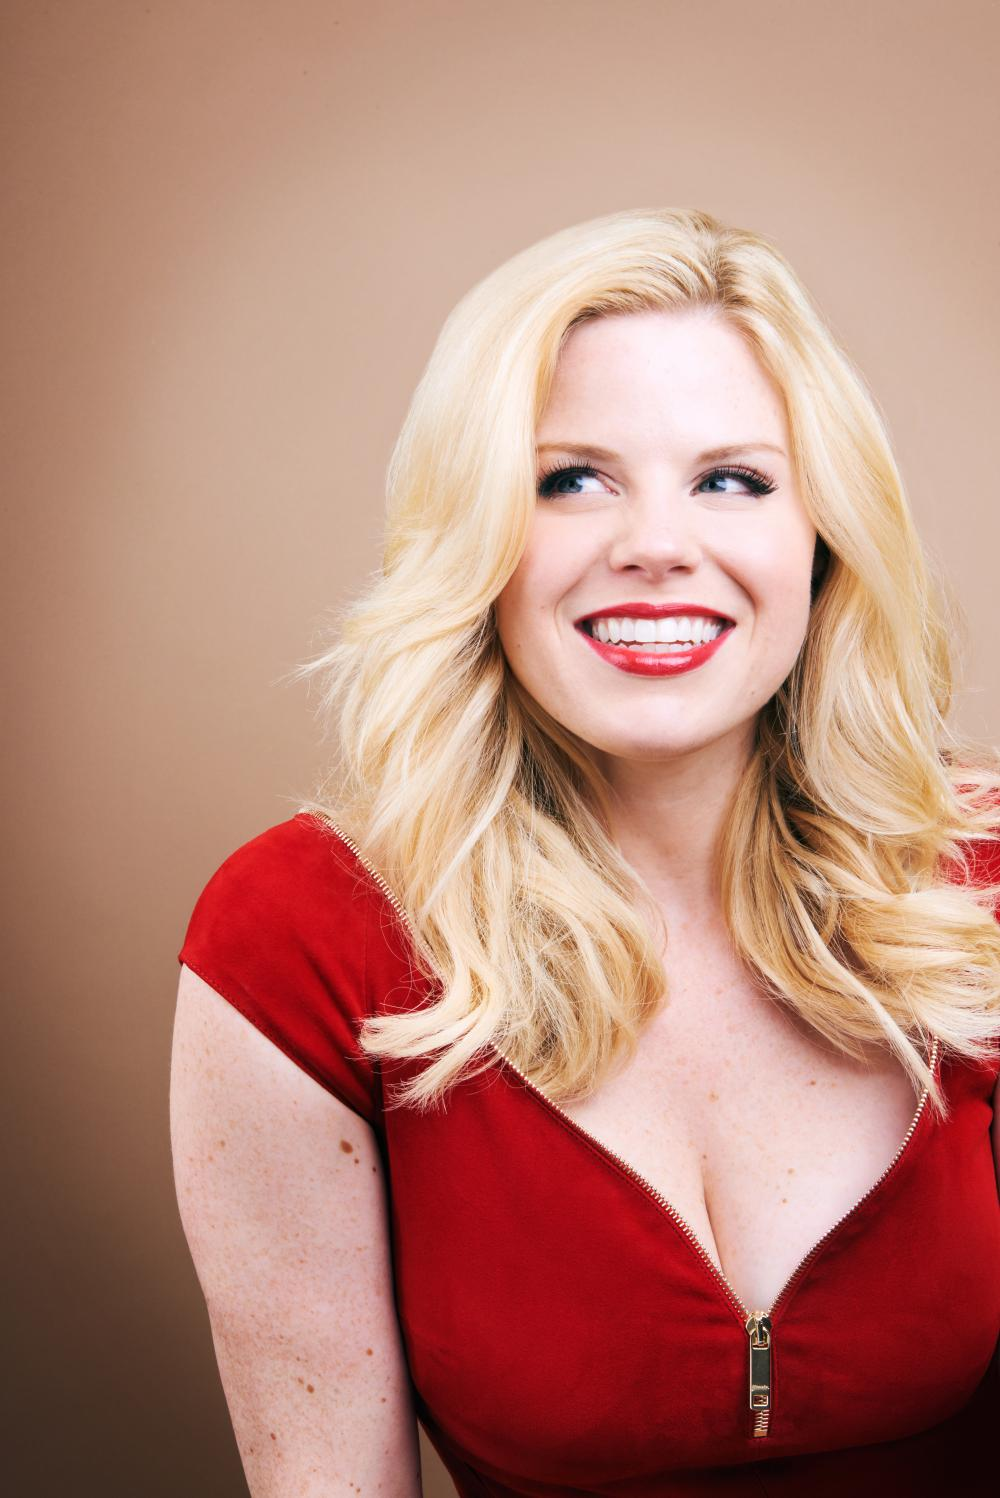 Megan Hilty in a red shirt